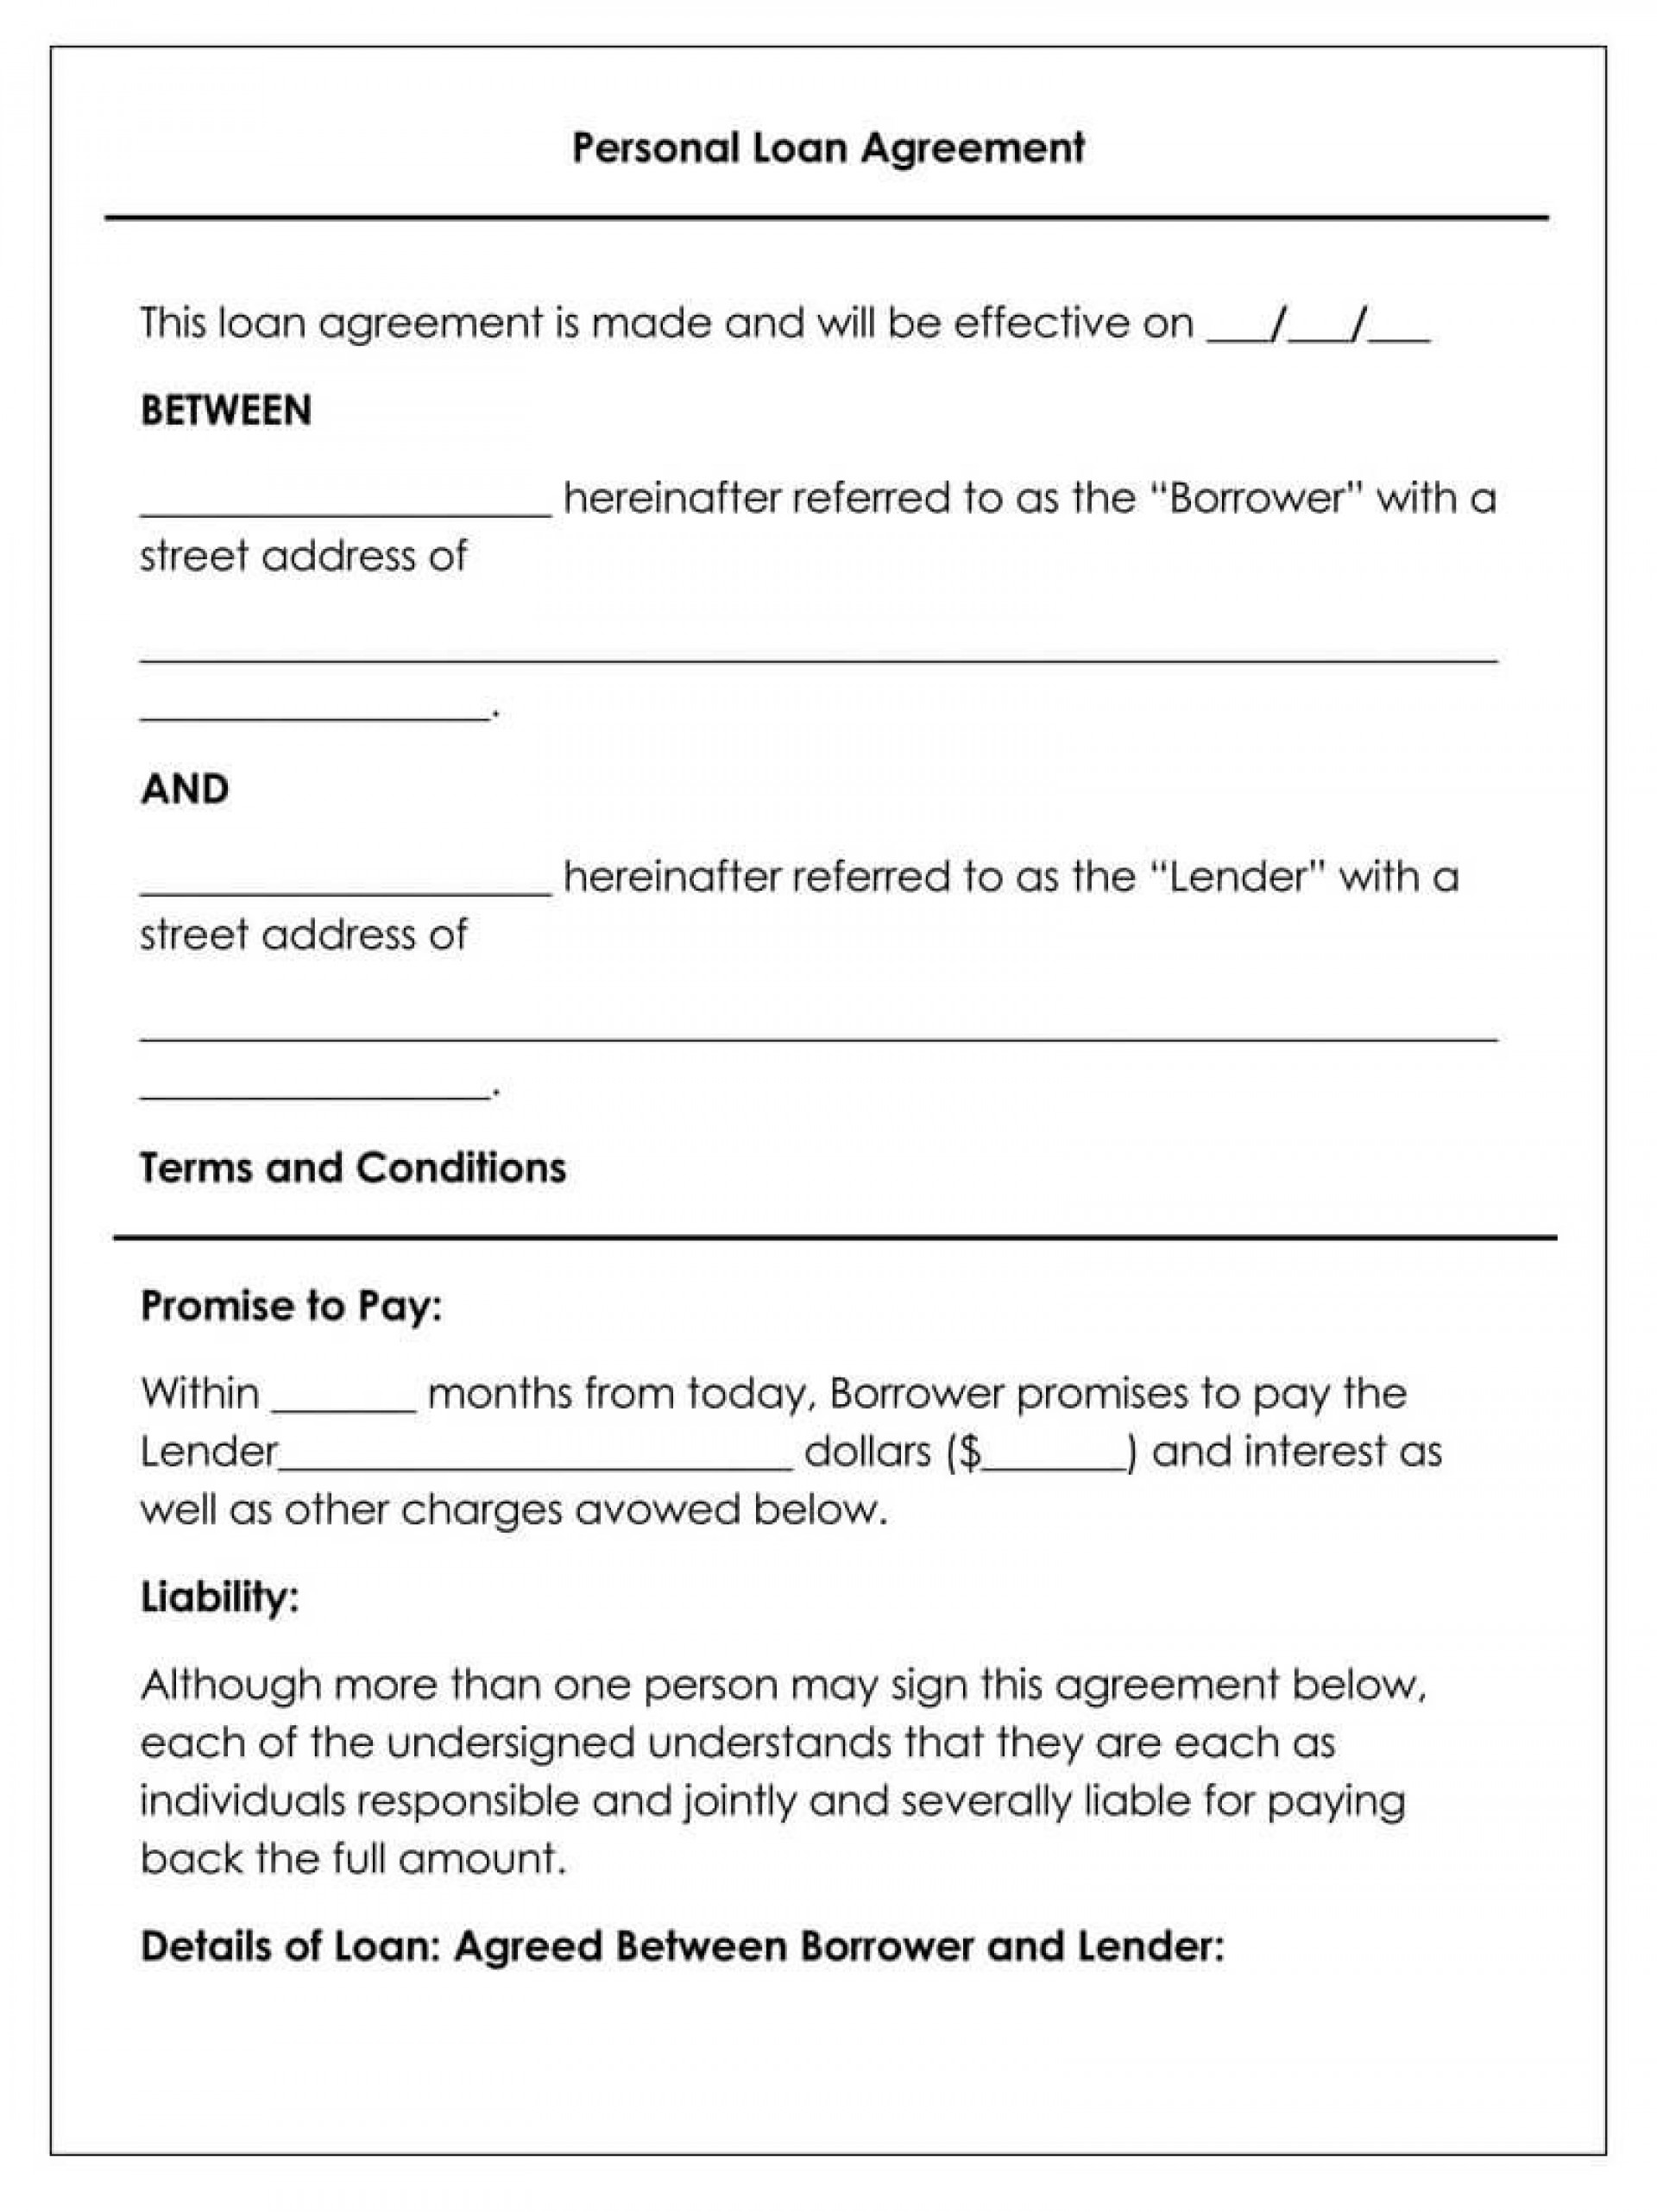 006 Archaicawful Personal Loan Agreement Template Example  Contract Free Word Format South Africa1920